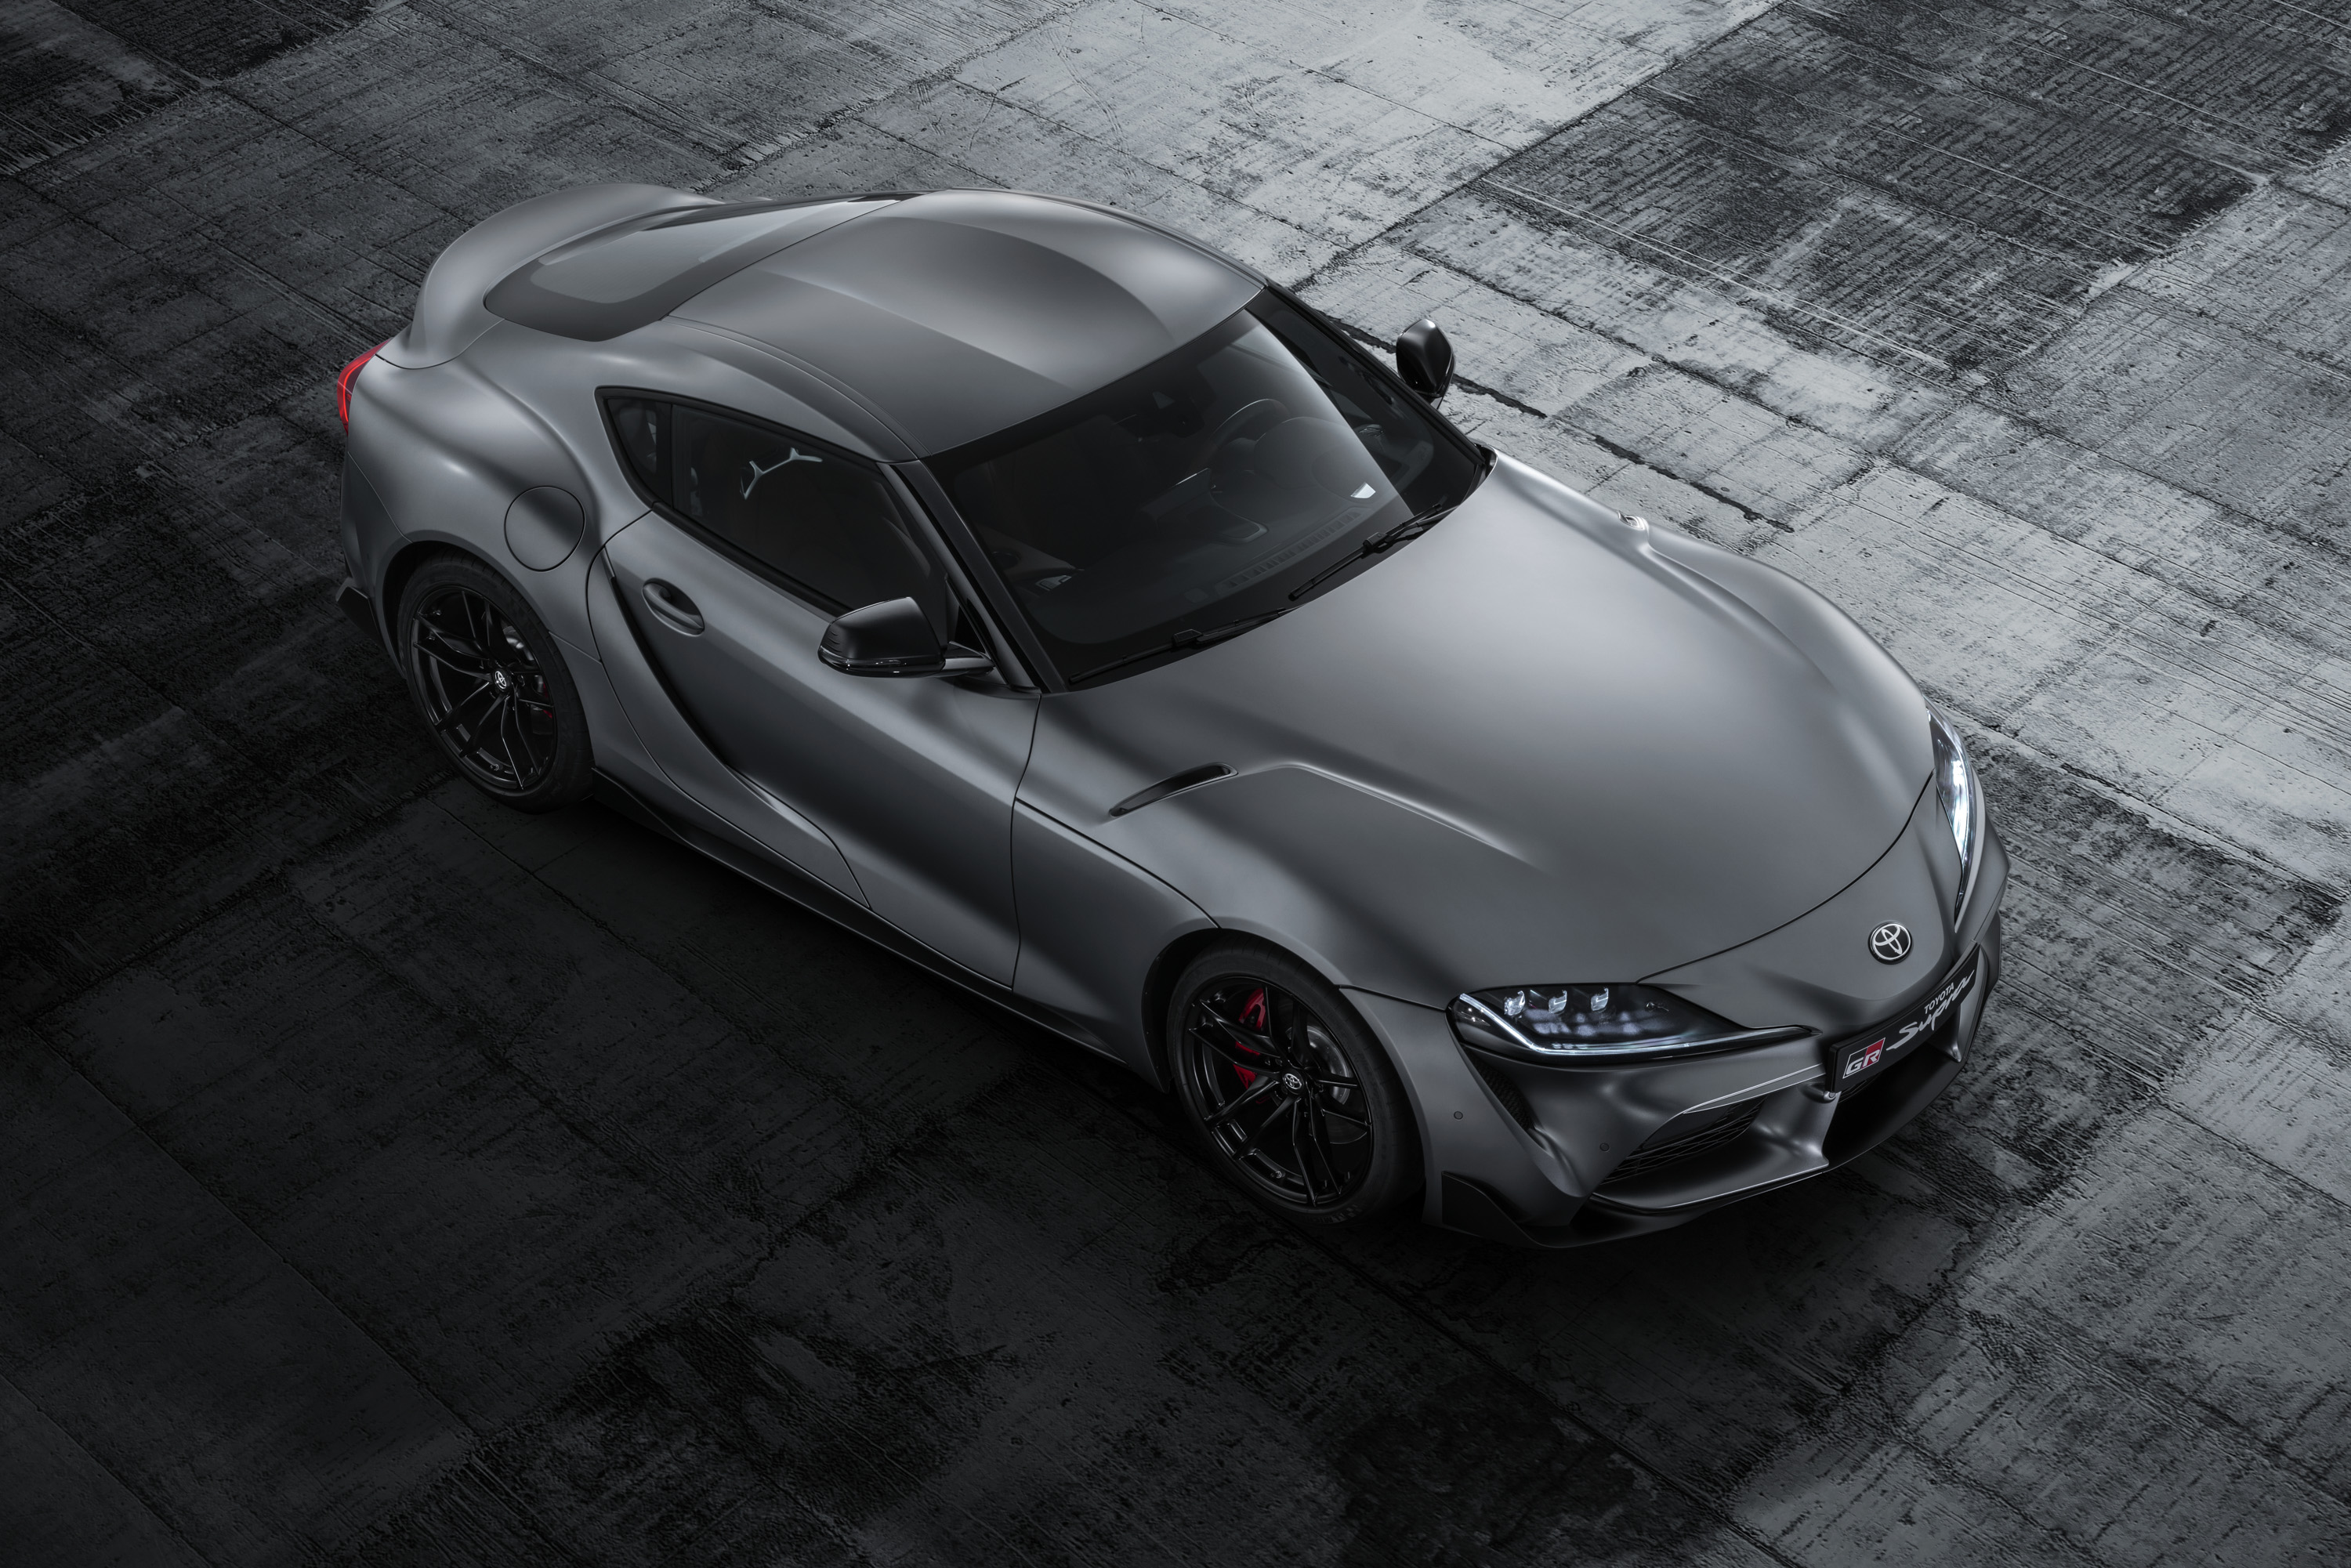 A 7 40 Nurburgring Lap Time For The Toyota Supra Toyota Thinks It